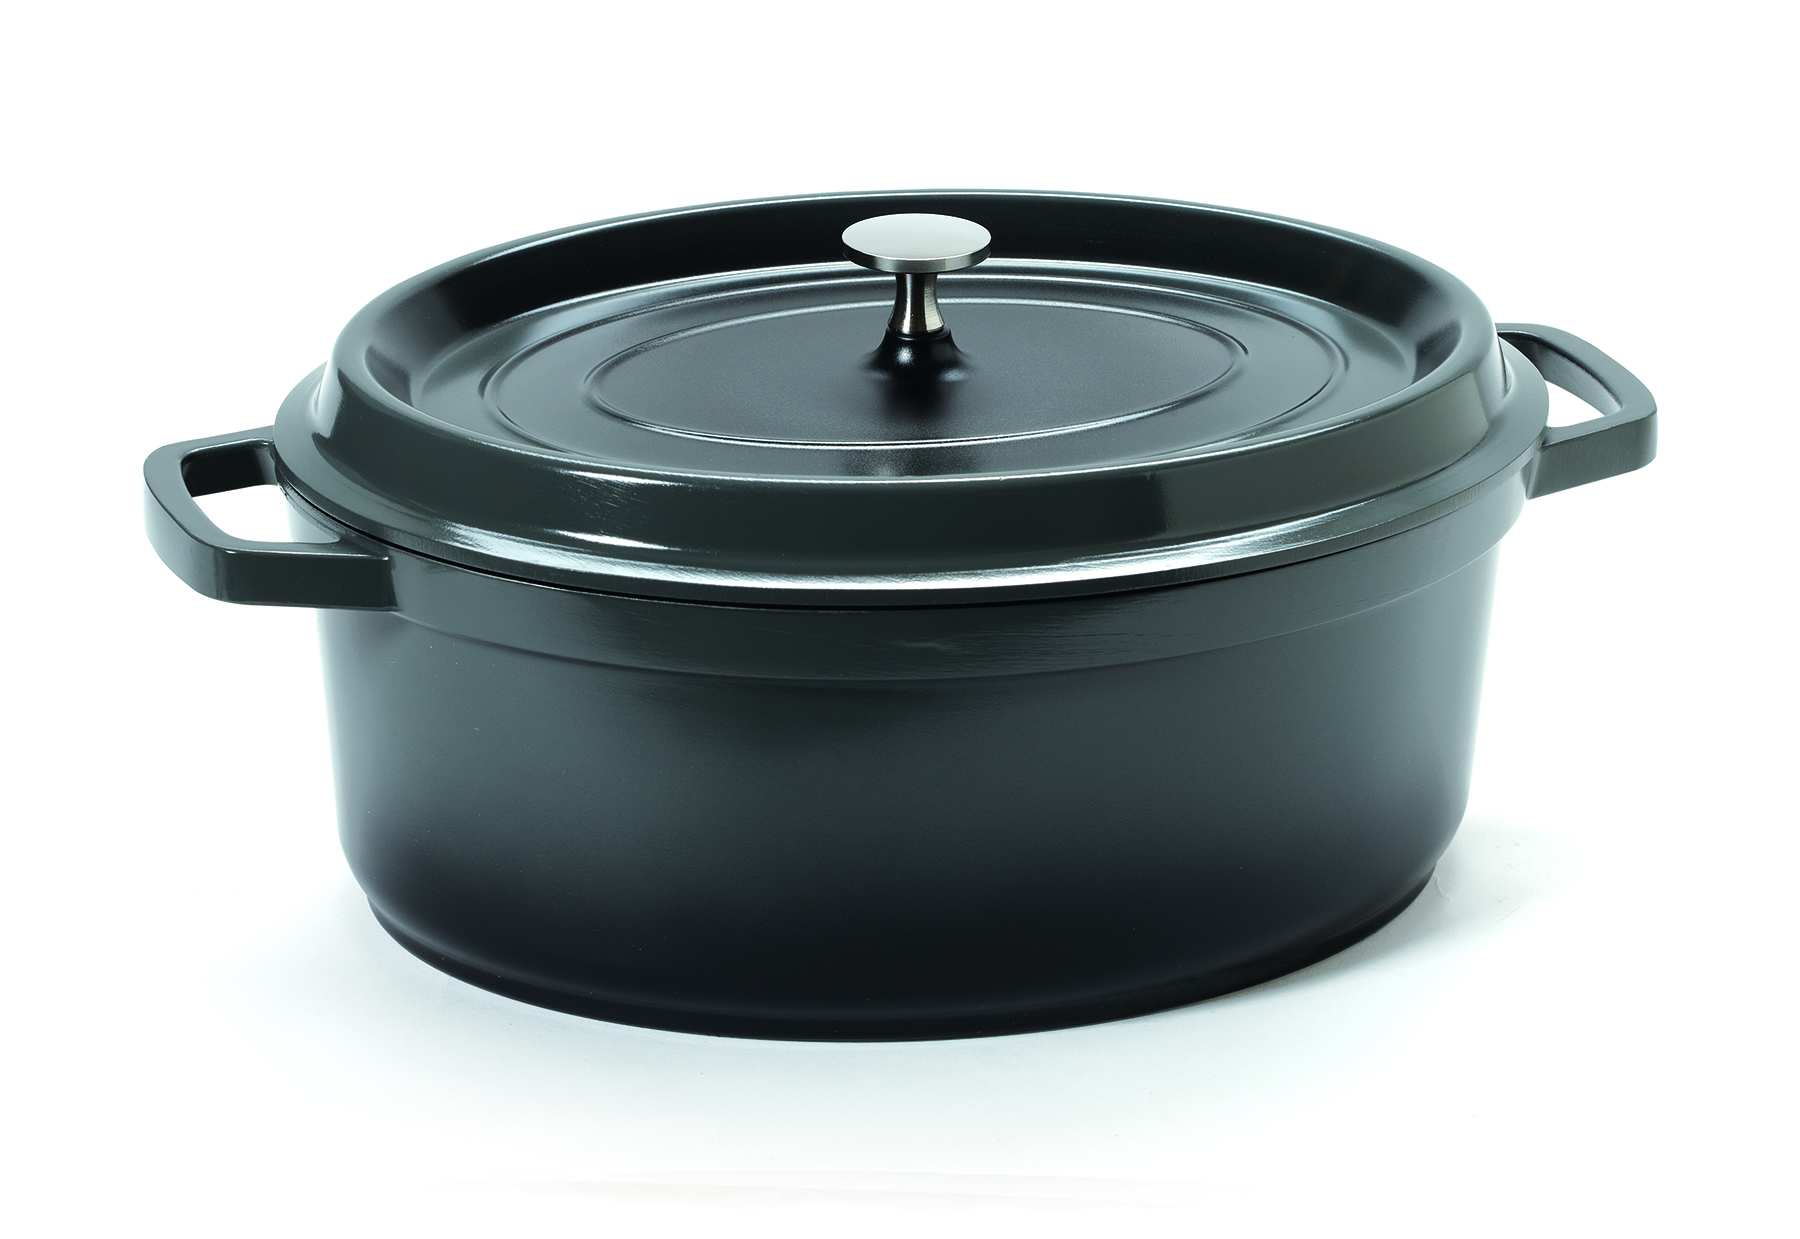 6 5 Qt Induction Ready Oval Dutch Oven W Lid G E T